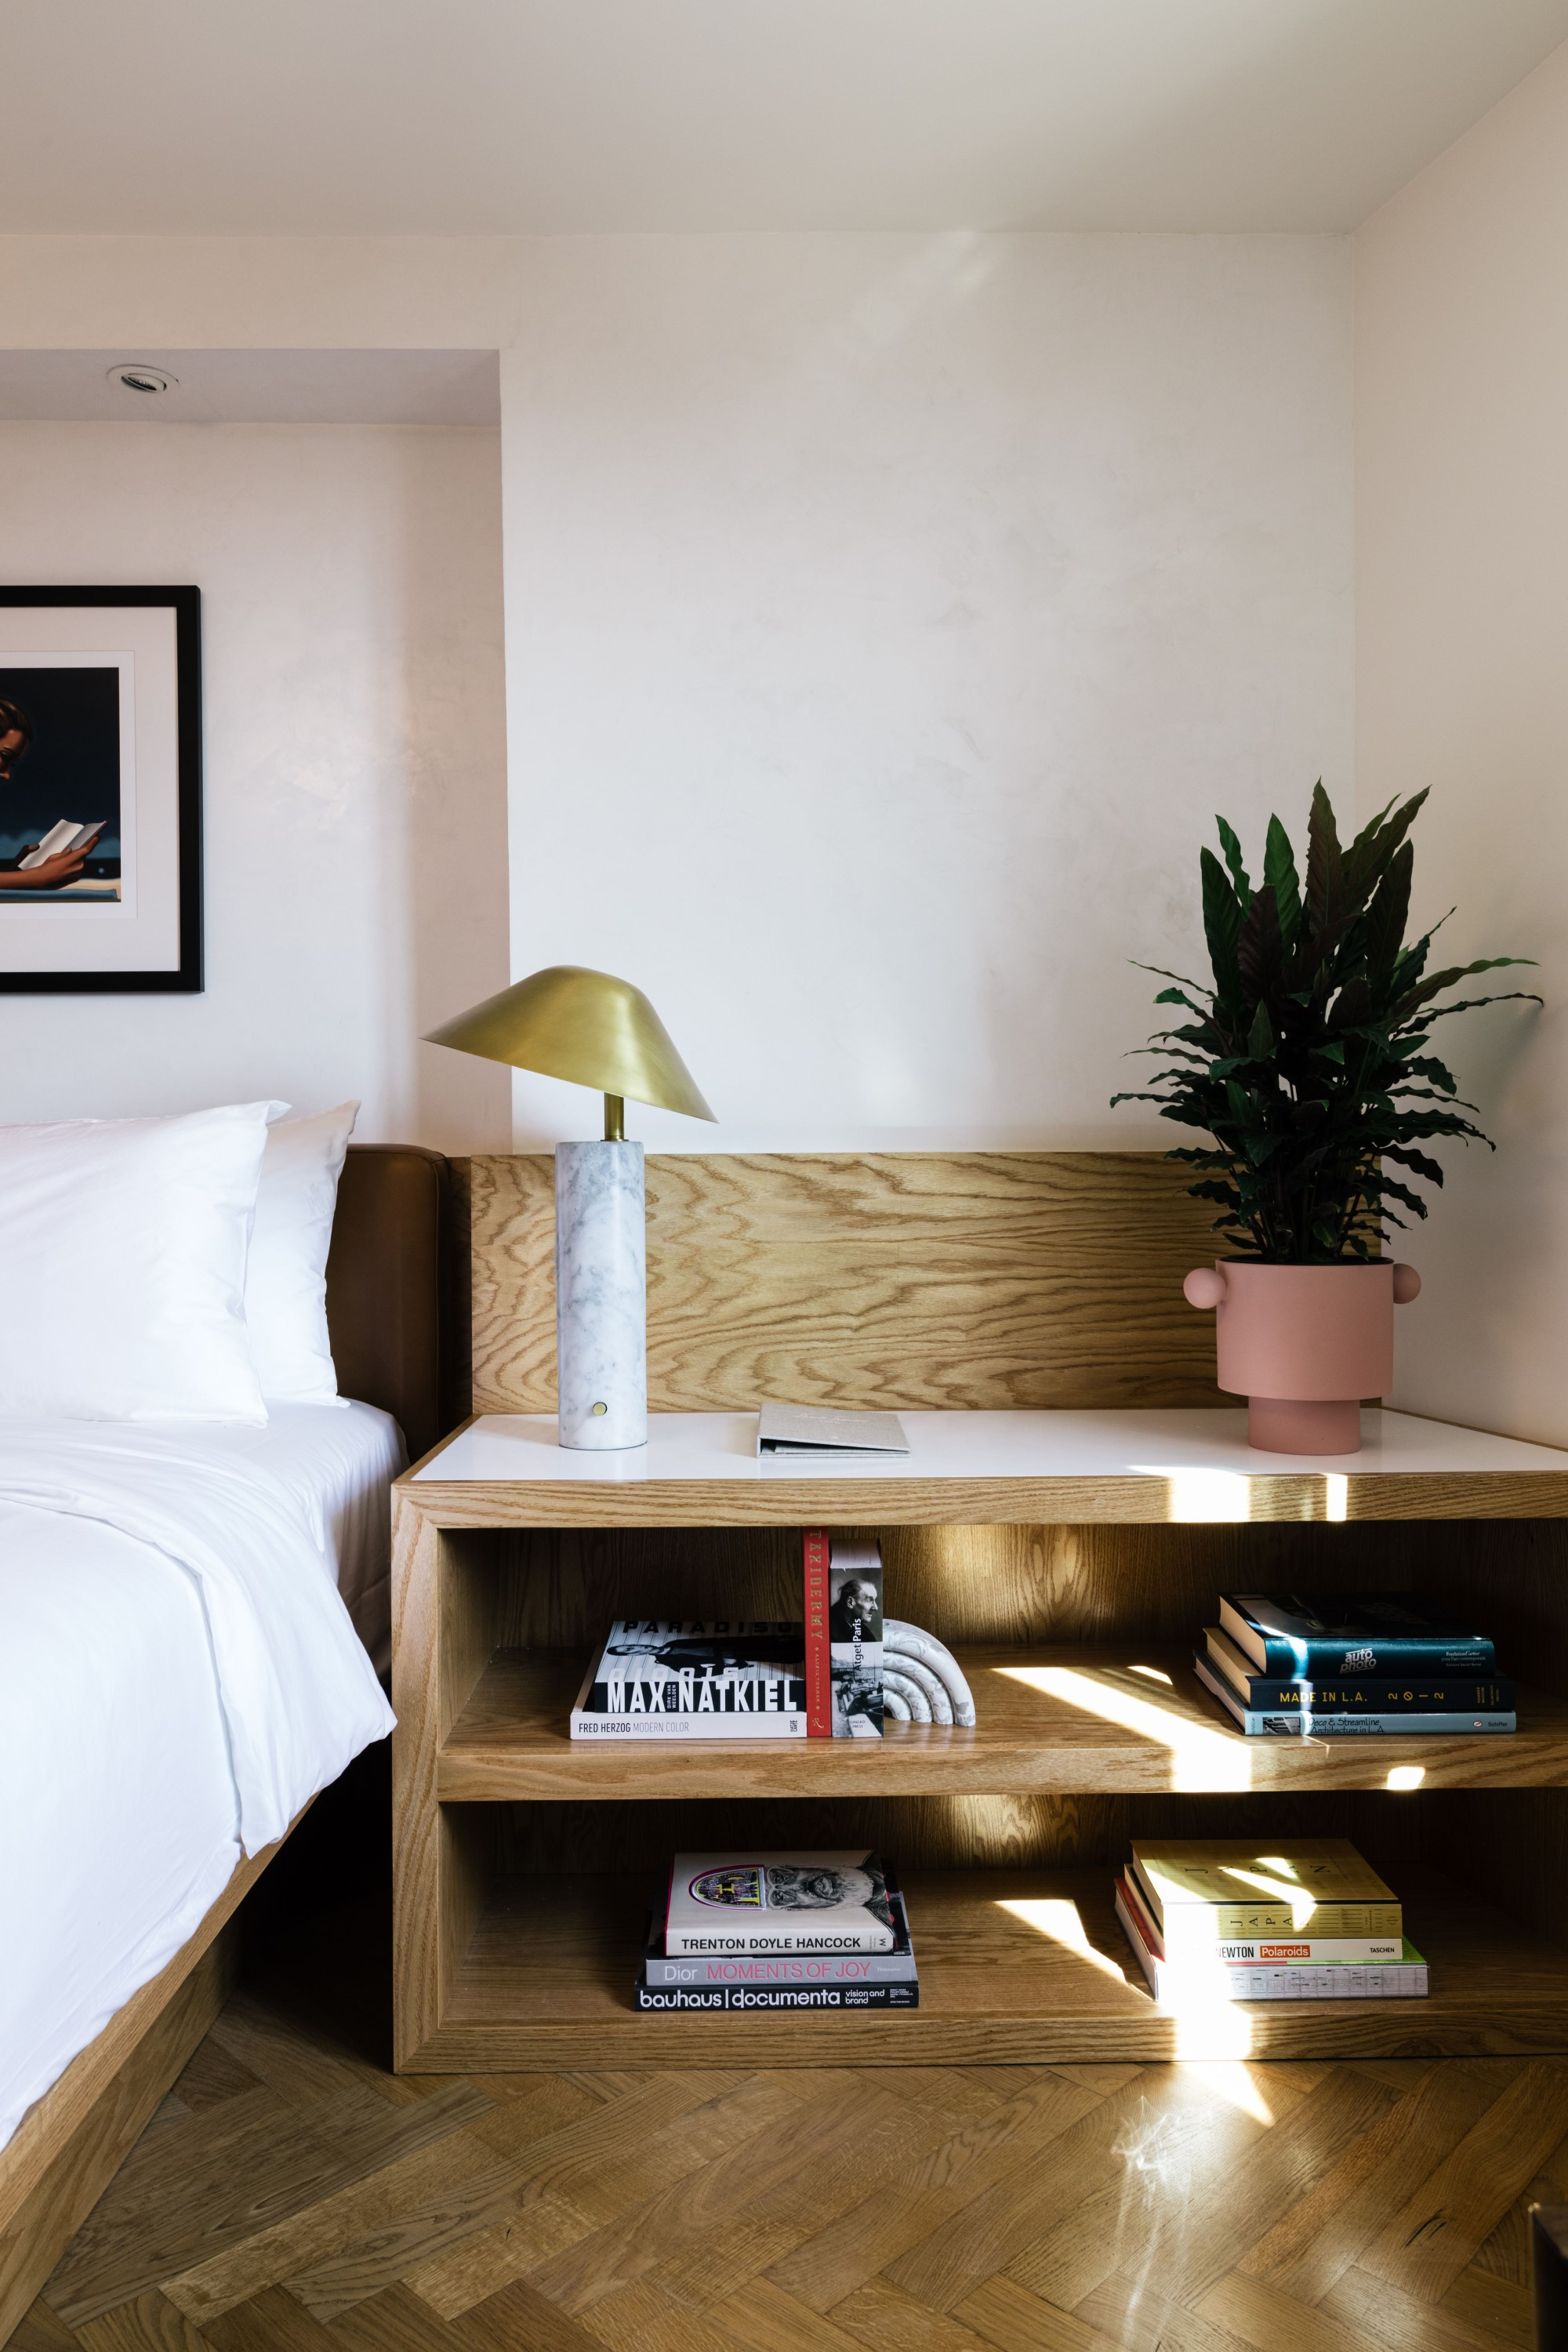 Bedside table with books, lamp, plant and sunlight